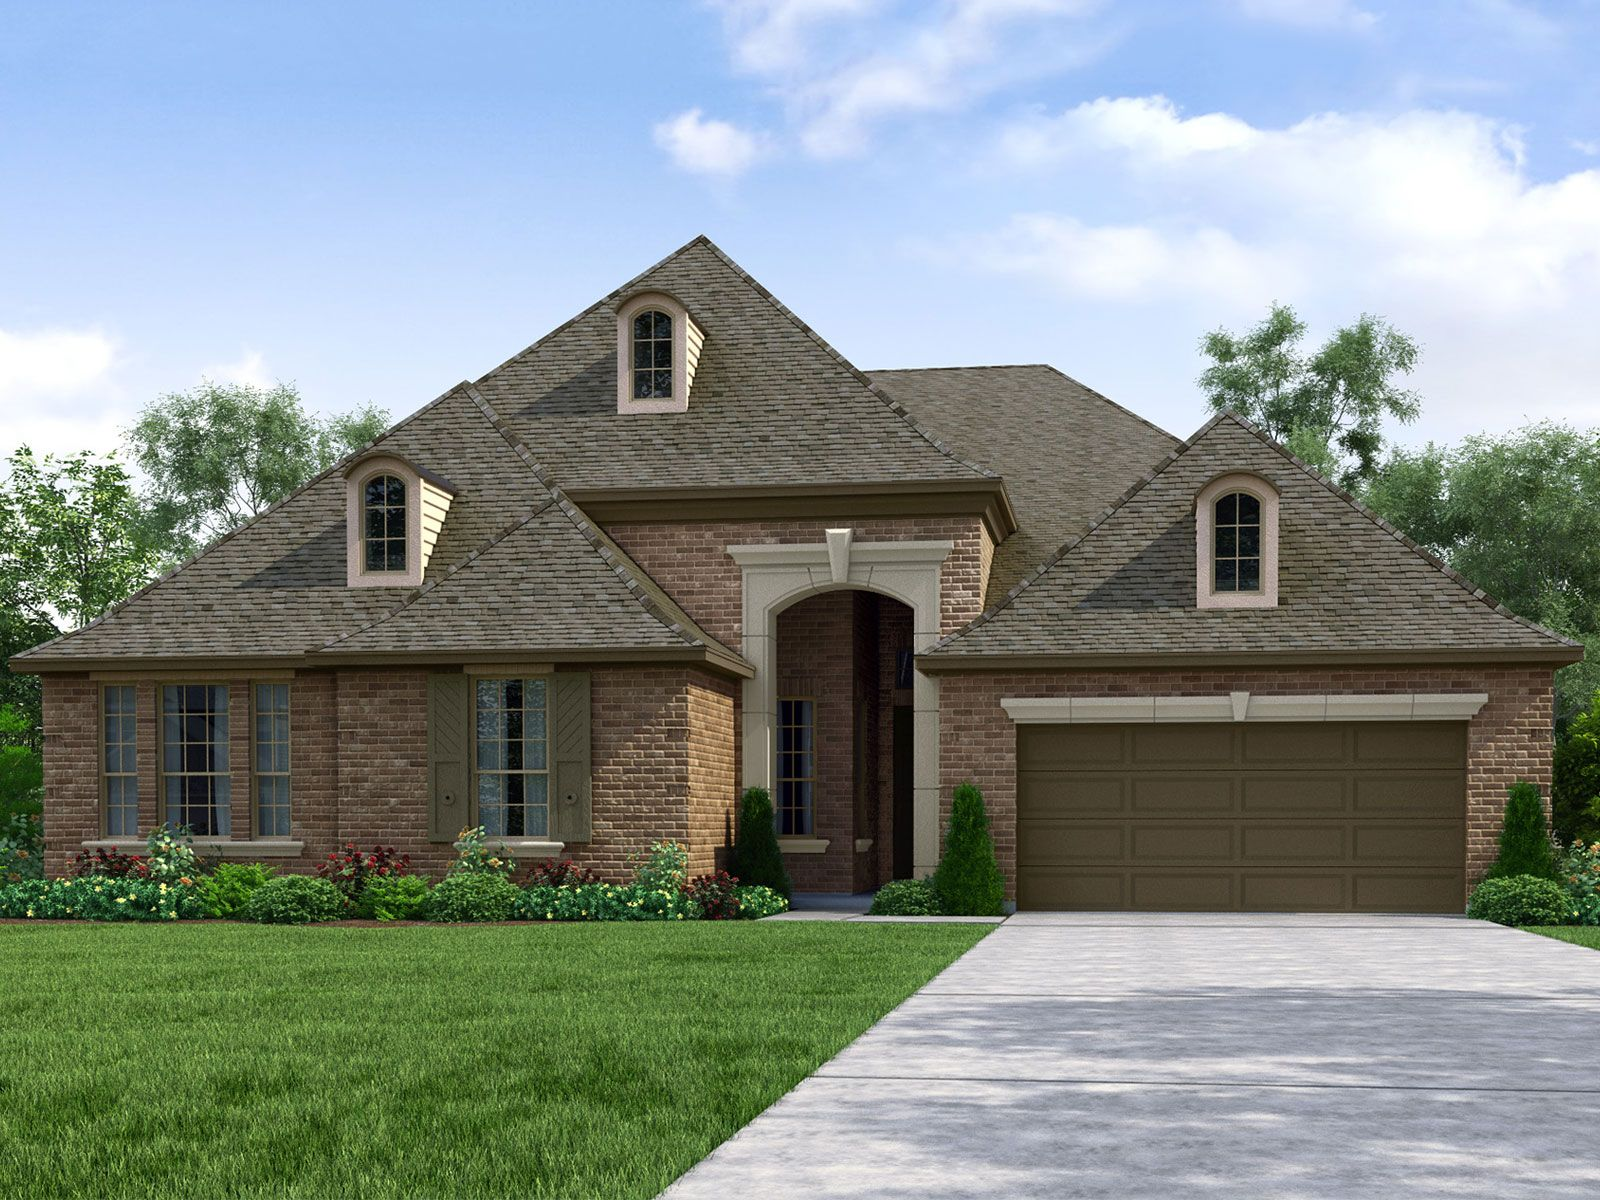 New Construction Homes In Imperial Ca